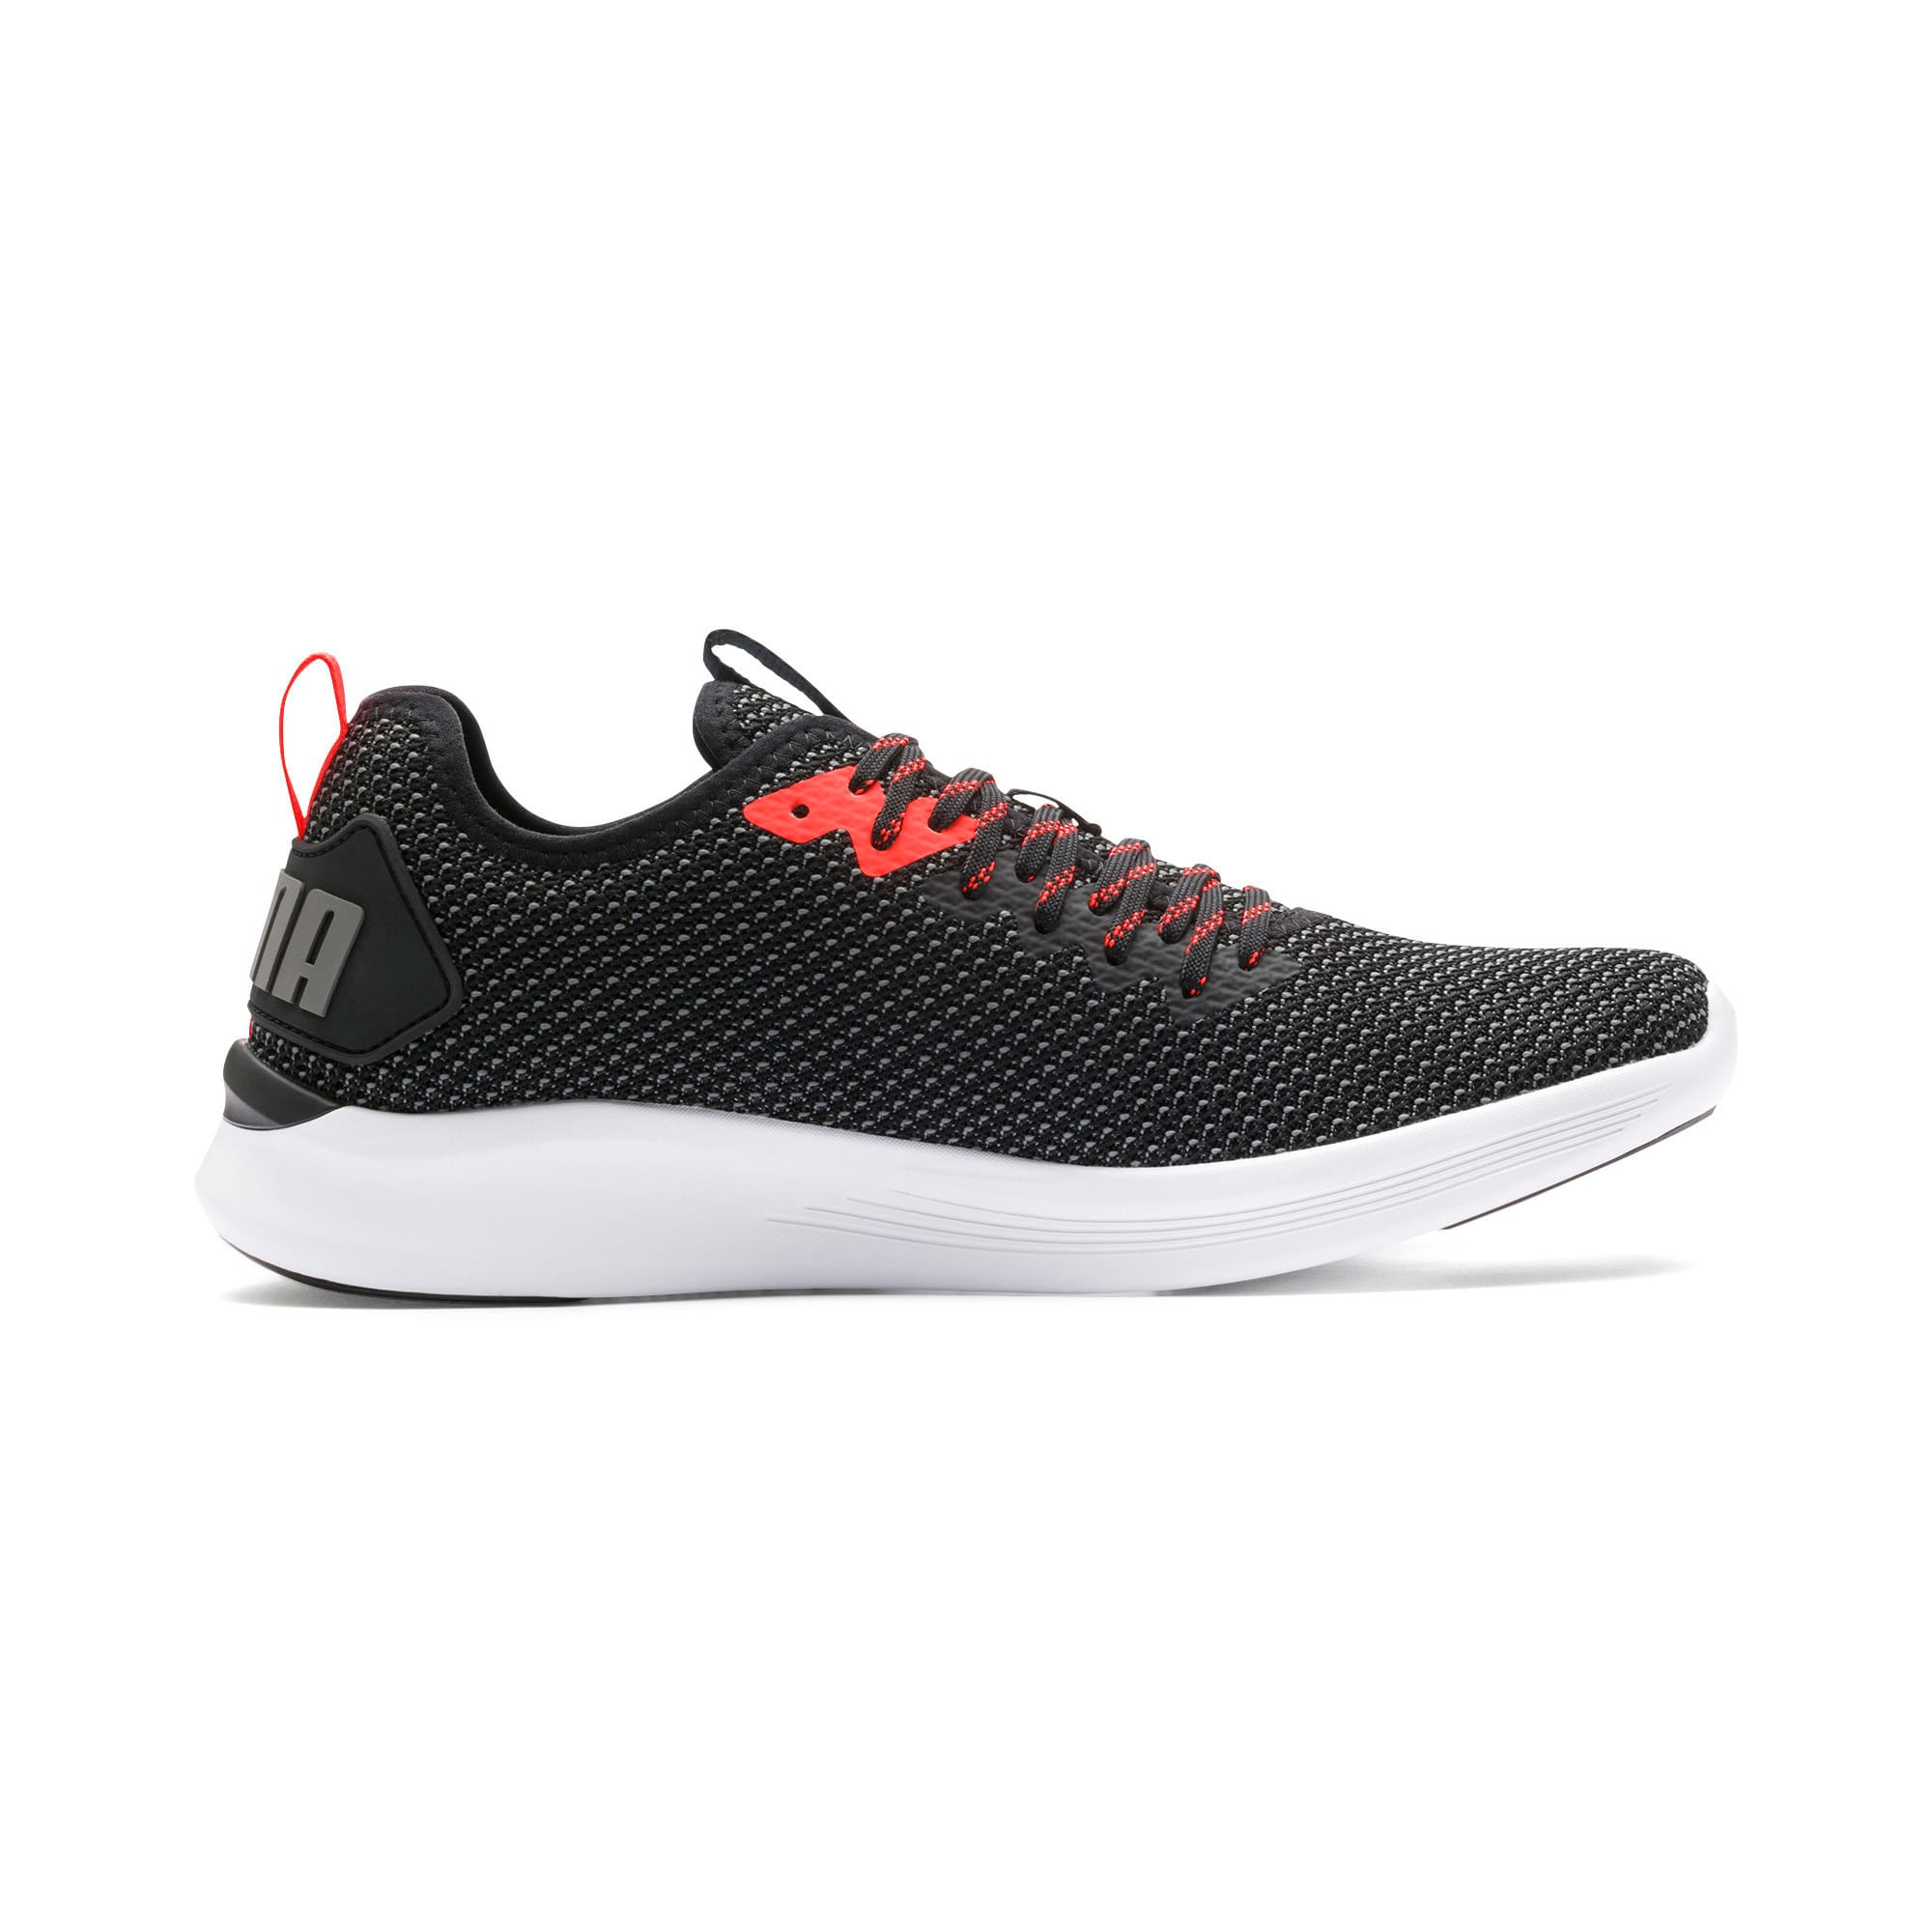 Thumbnail 6 of Scarpe Running IGNITE Flash FS uomo, Puma Black-Nrgy Red, medium